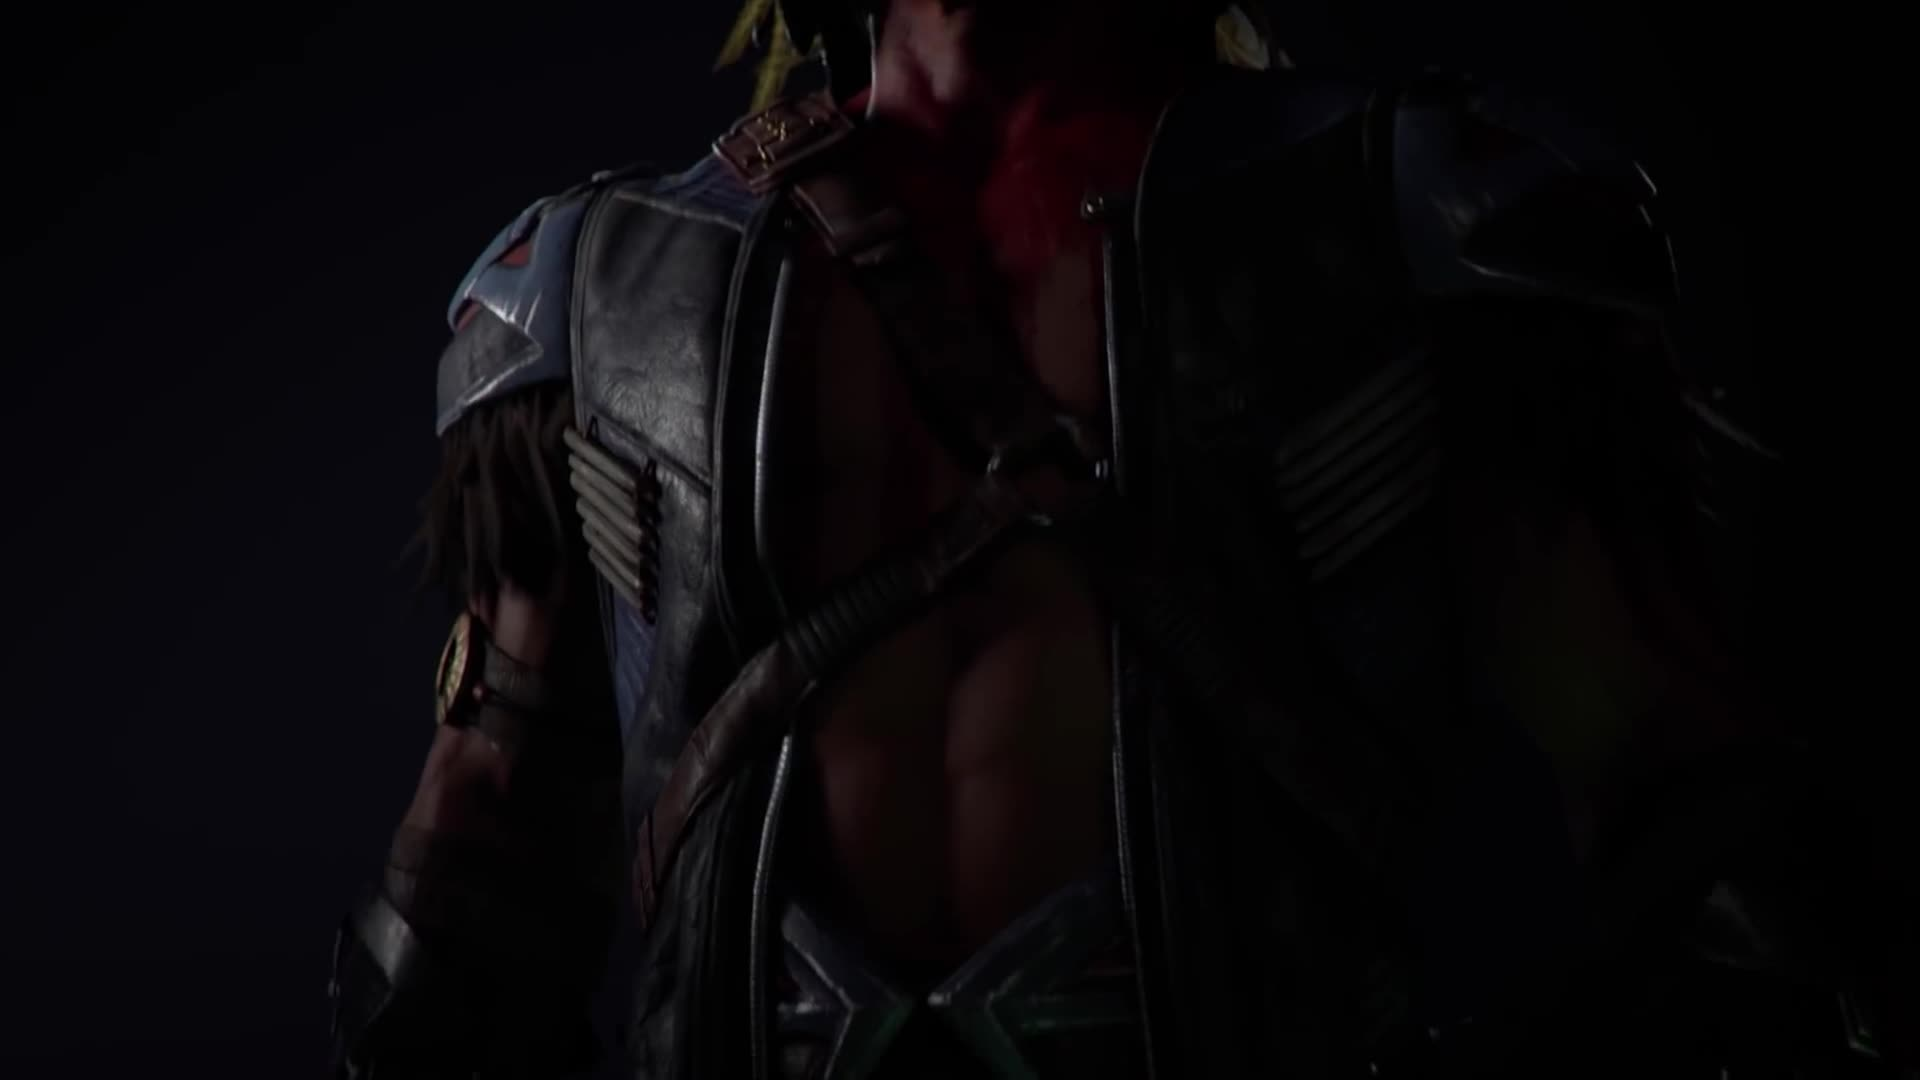 Mortal Kombat 11 Kombat Pack - Official Roster Reveal Trailer [HD] screen capture